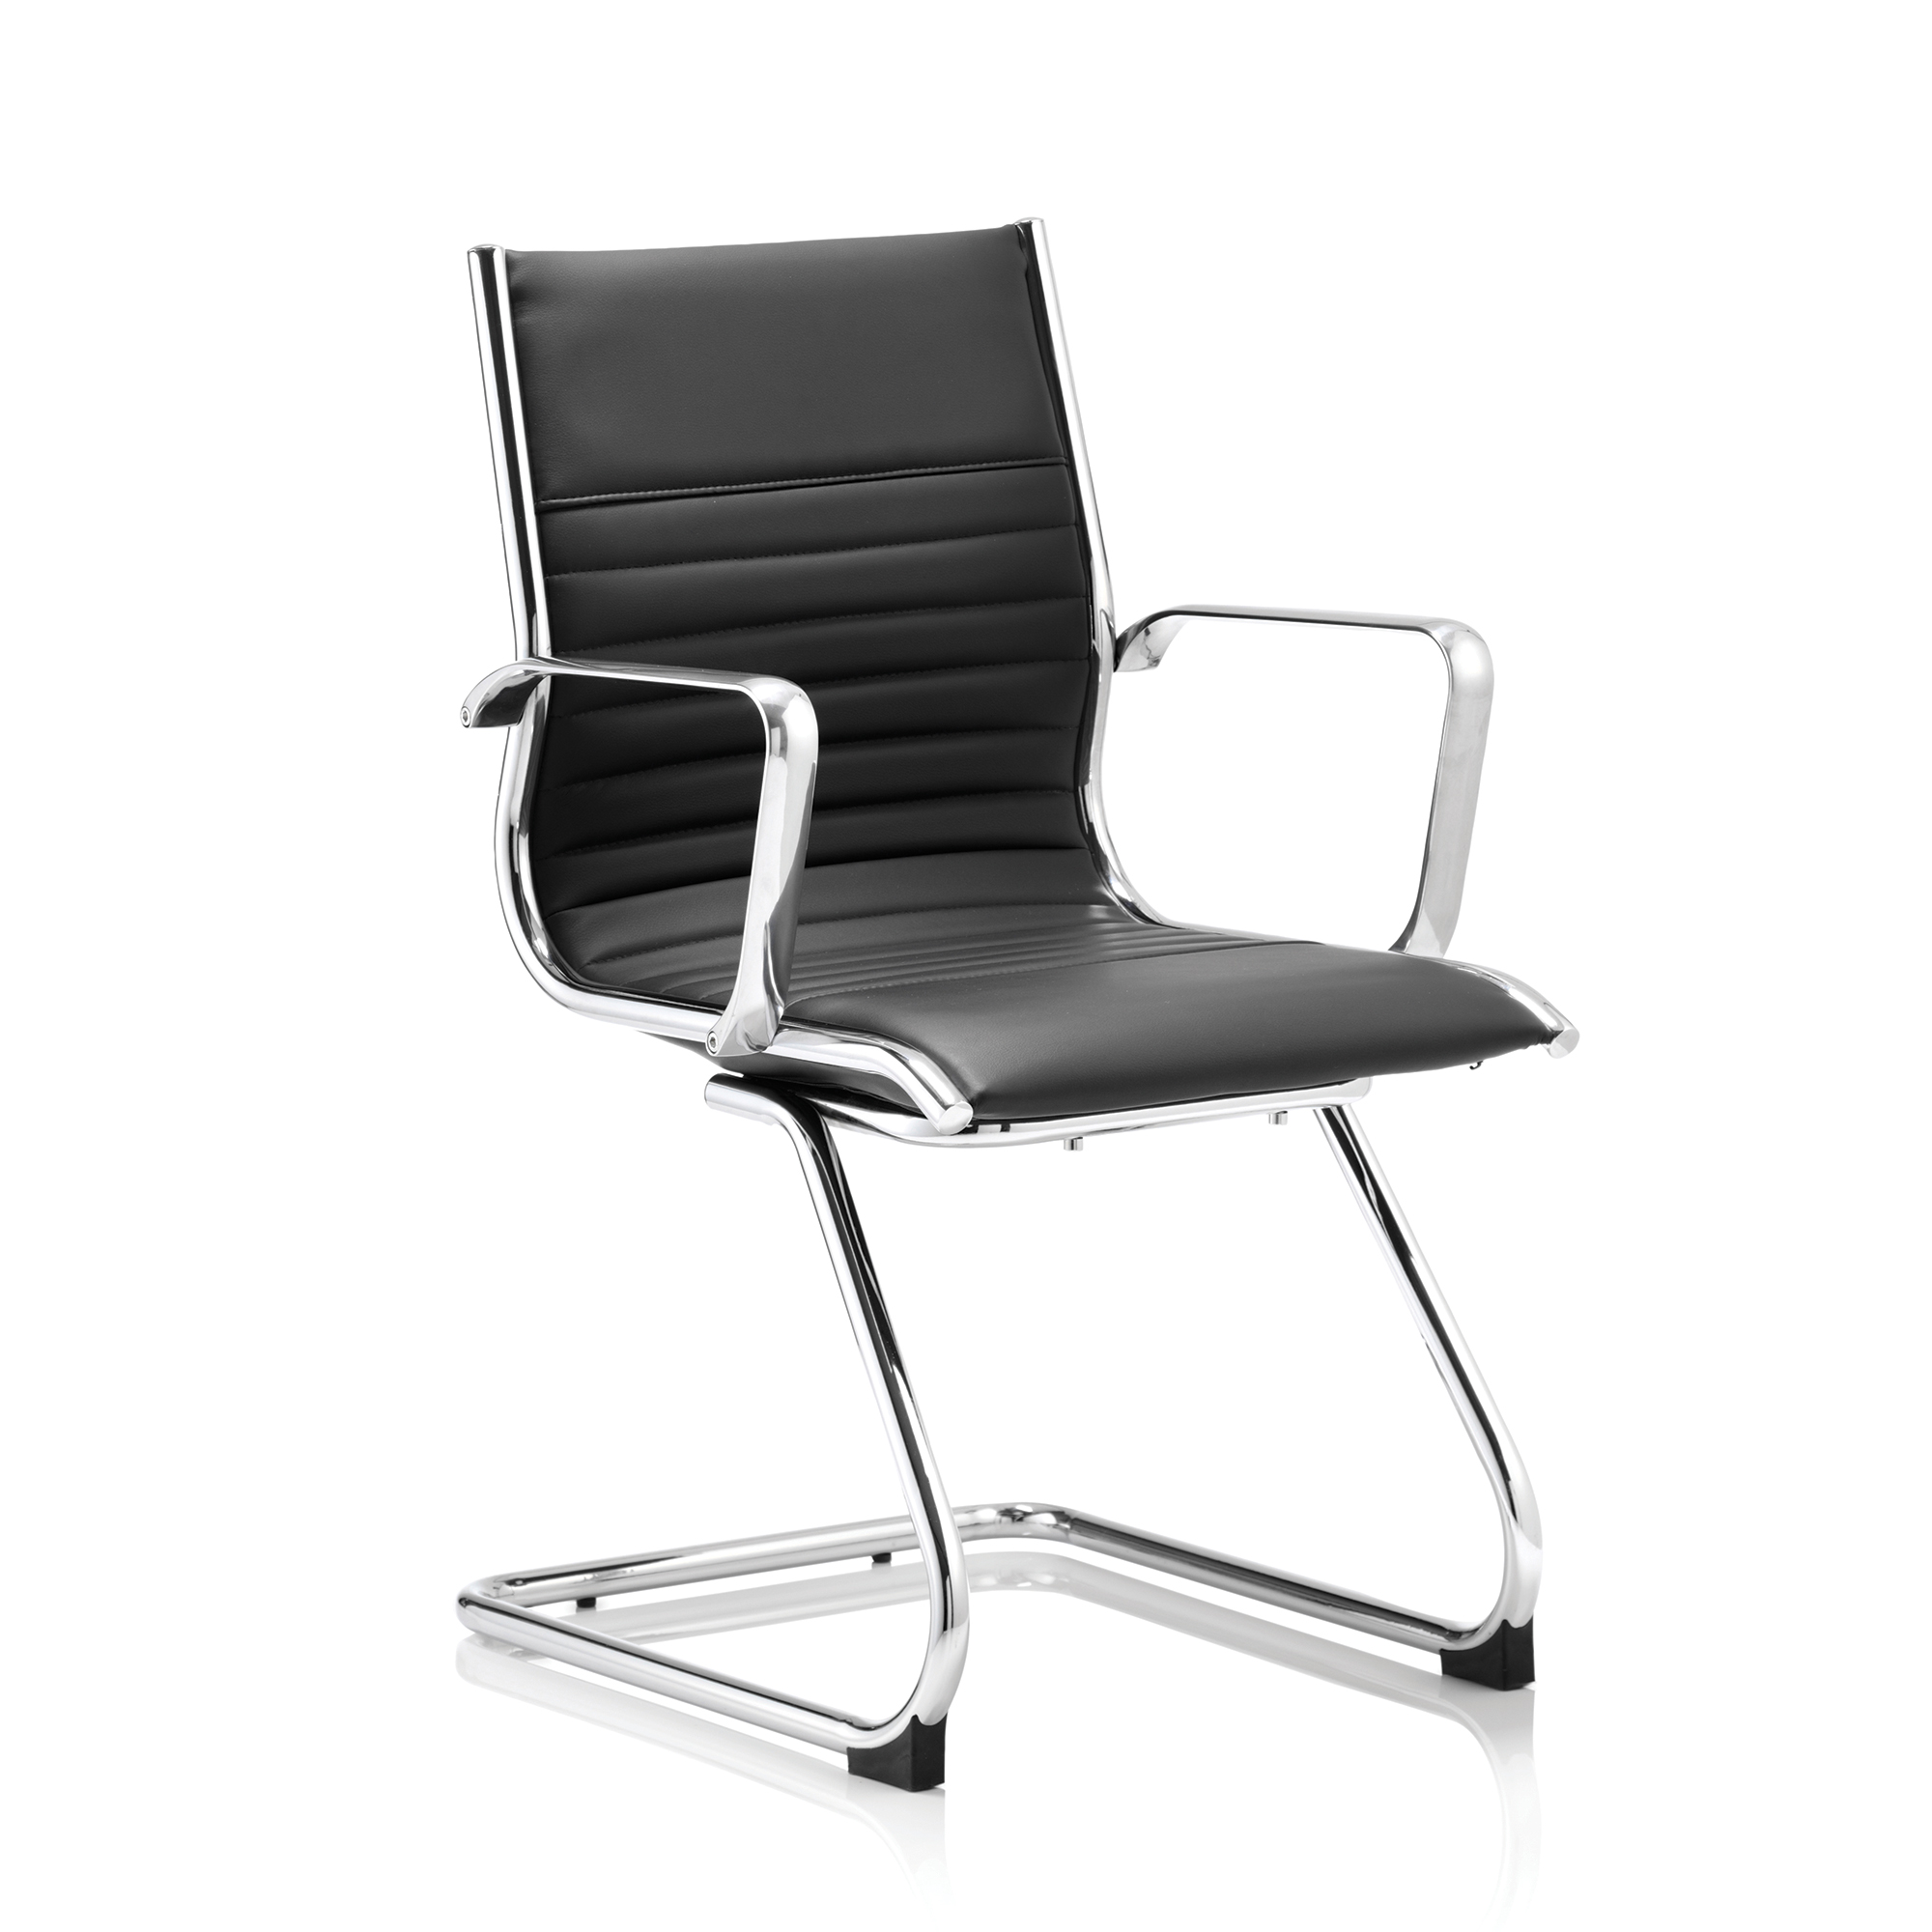 Guest seating Sonix Ritz Cantilever Chair With Arms Bonded Leather Black Ref BR000123